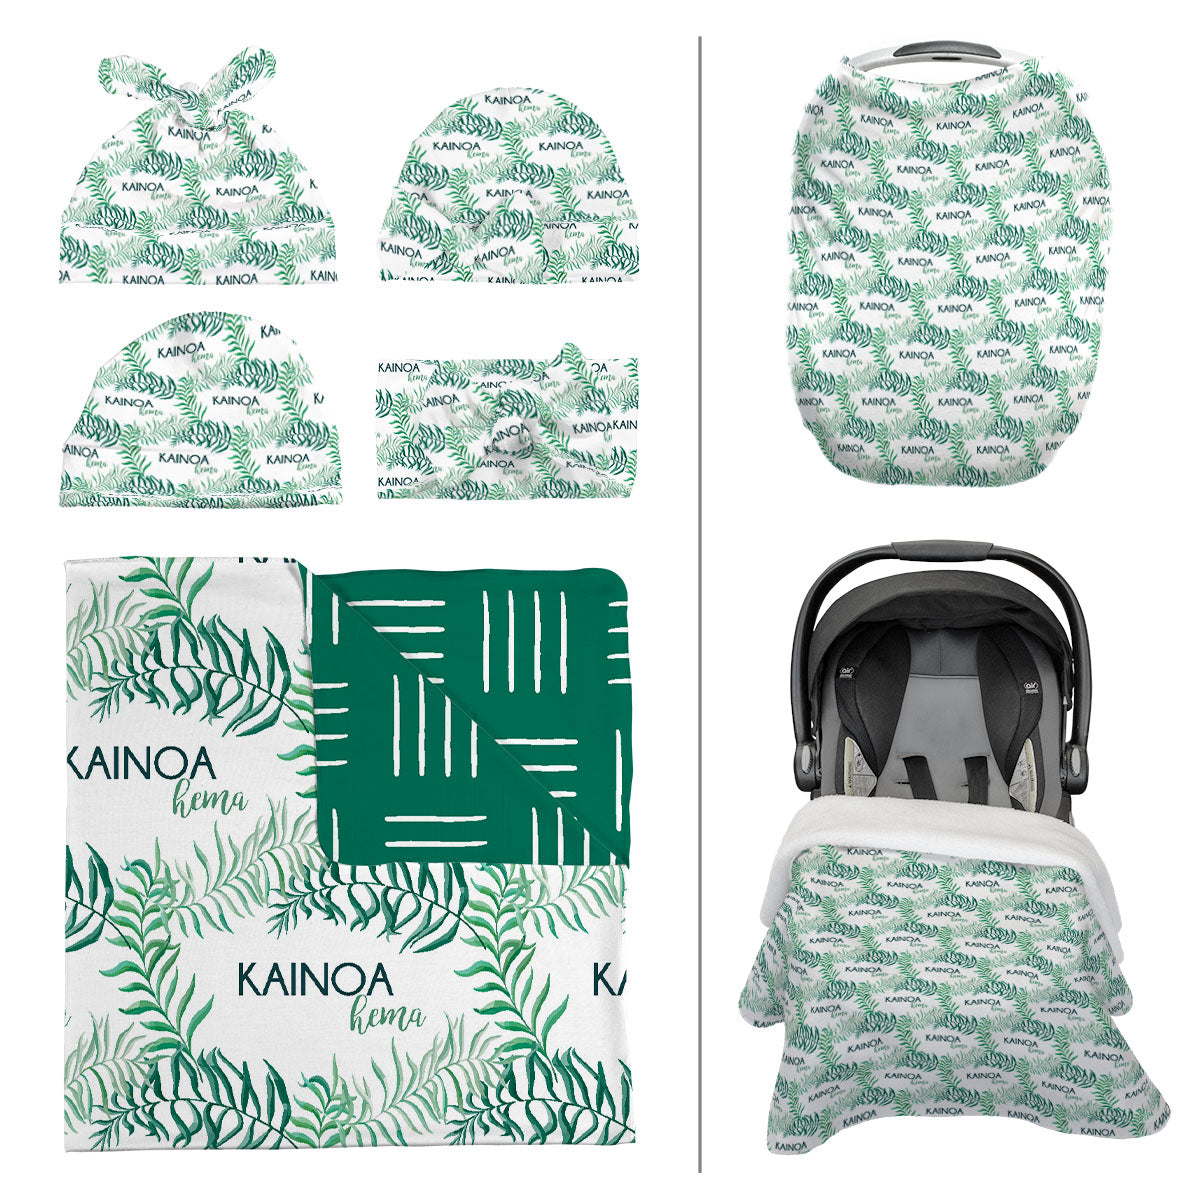 Kainoa's Palm Tree | Take Me Home Bundle